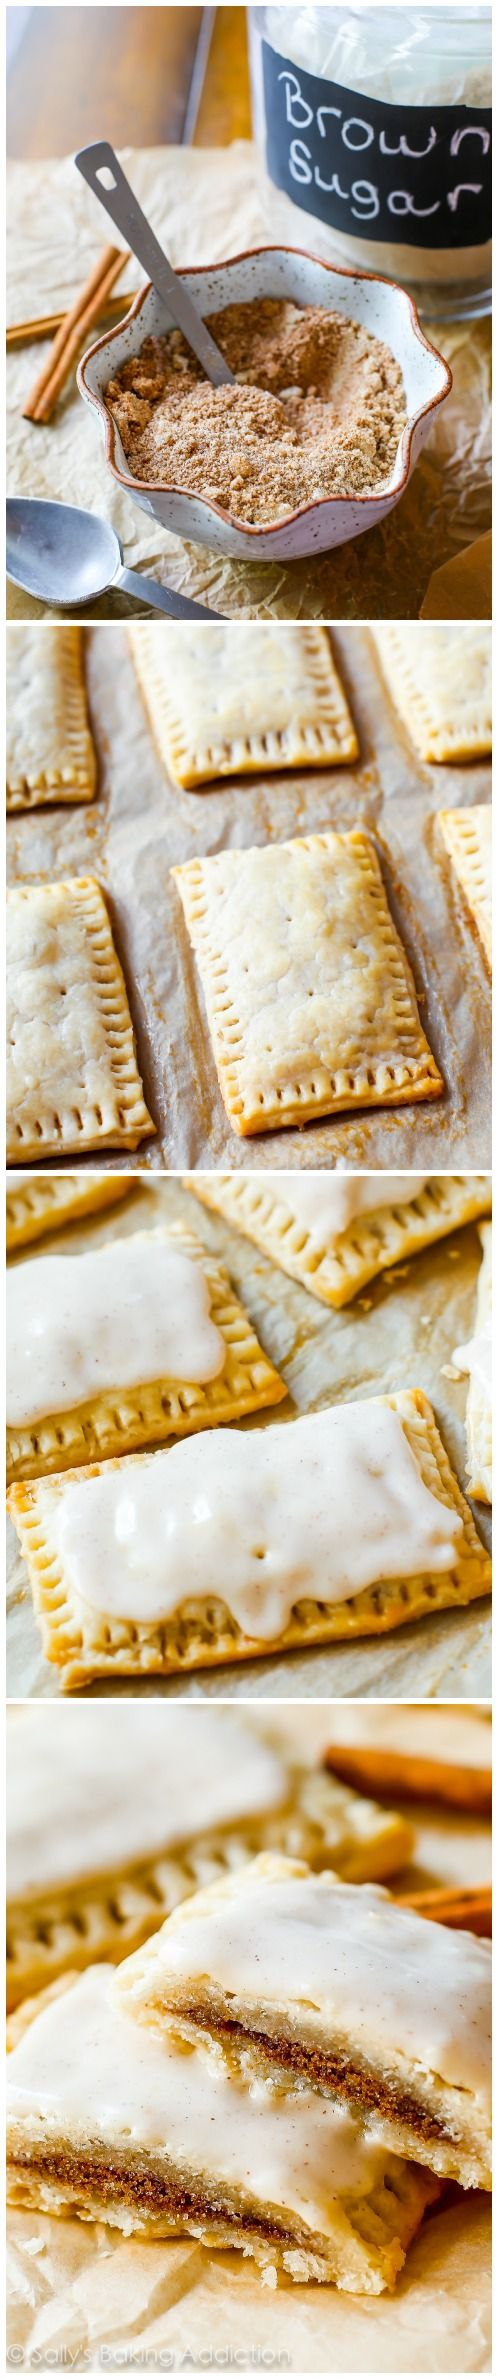 How to Make Brown Sugar Cinnamon Pop Tarts from scratch - recipe by sallysbakingaddiction.com